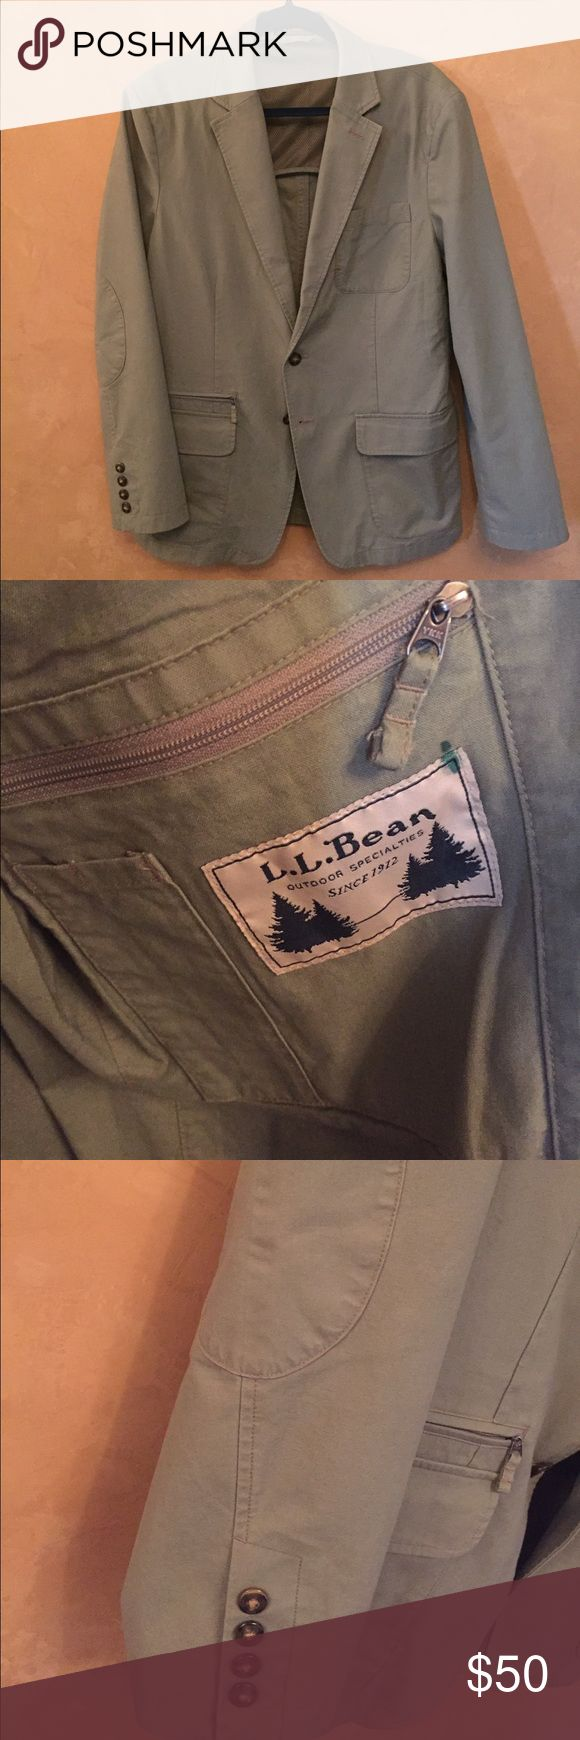 LL BEAN kaki jacket 40R Never worn, 100% cotton: easy care performance travel blazer. Great for spring and summer. Has lots of inside pockets, mesh lining inside top part. Casual outdoor style. LL bean Jackets & Coats